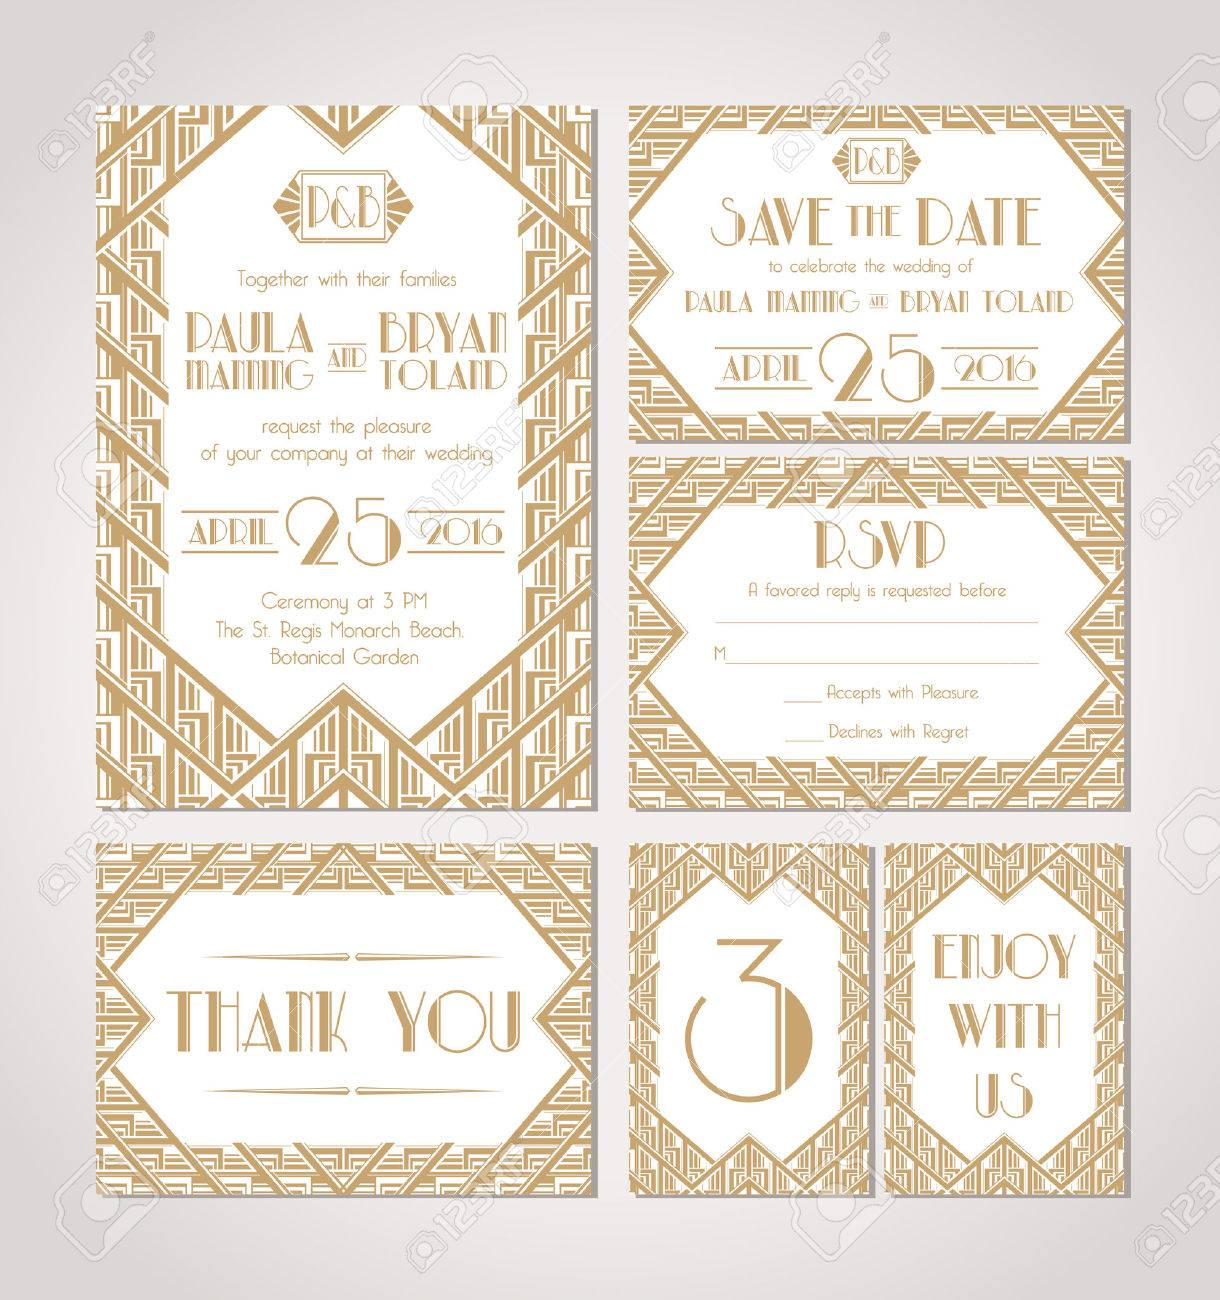 Art Deco Wedding Invitation Template Save The Date Royalty Free